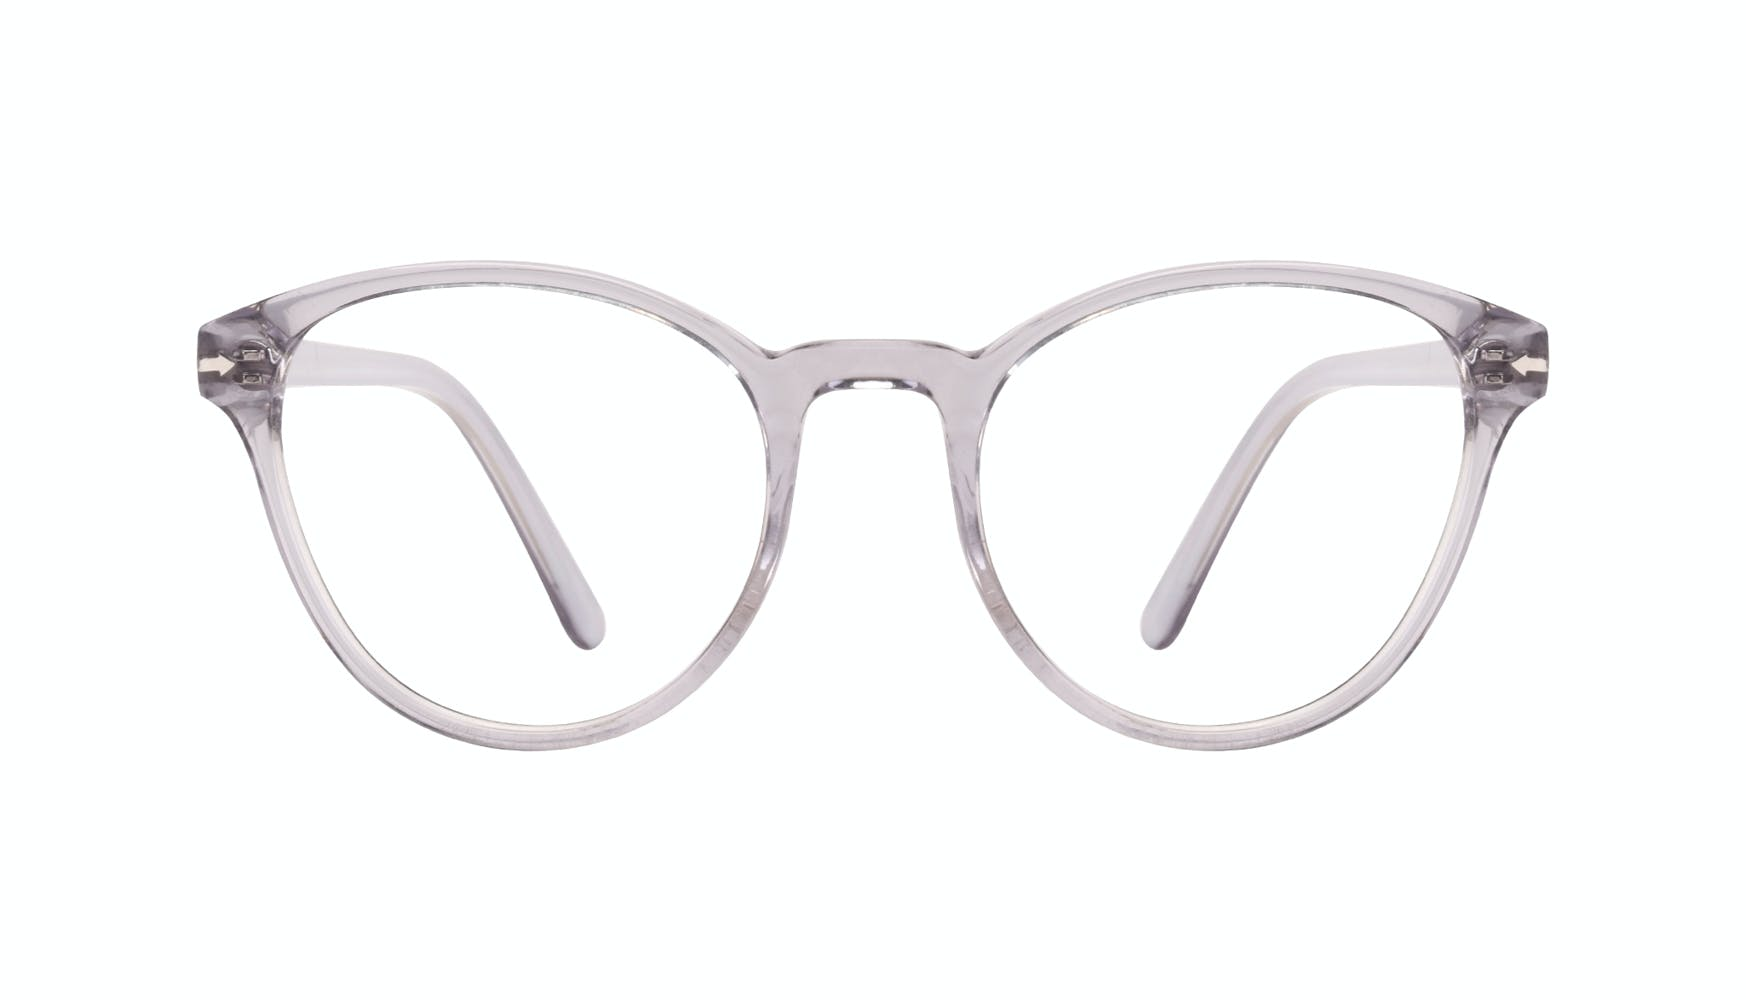 Affordable Fashion Glasses Round Eyeglasses Women London Fog Front